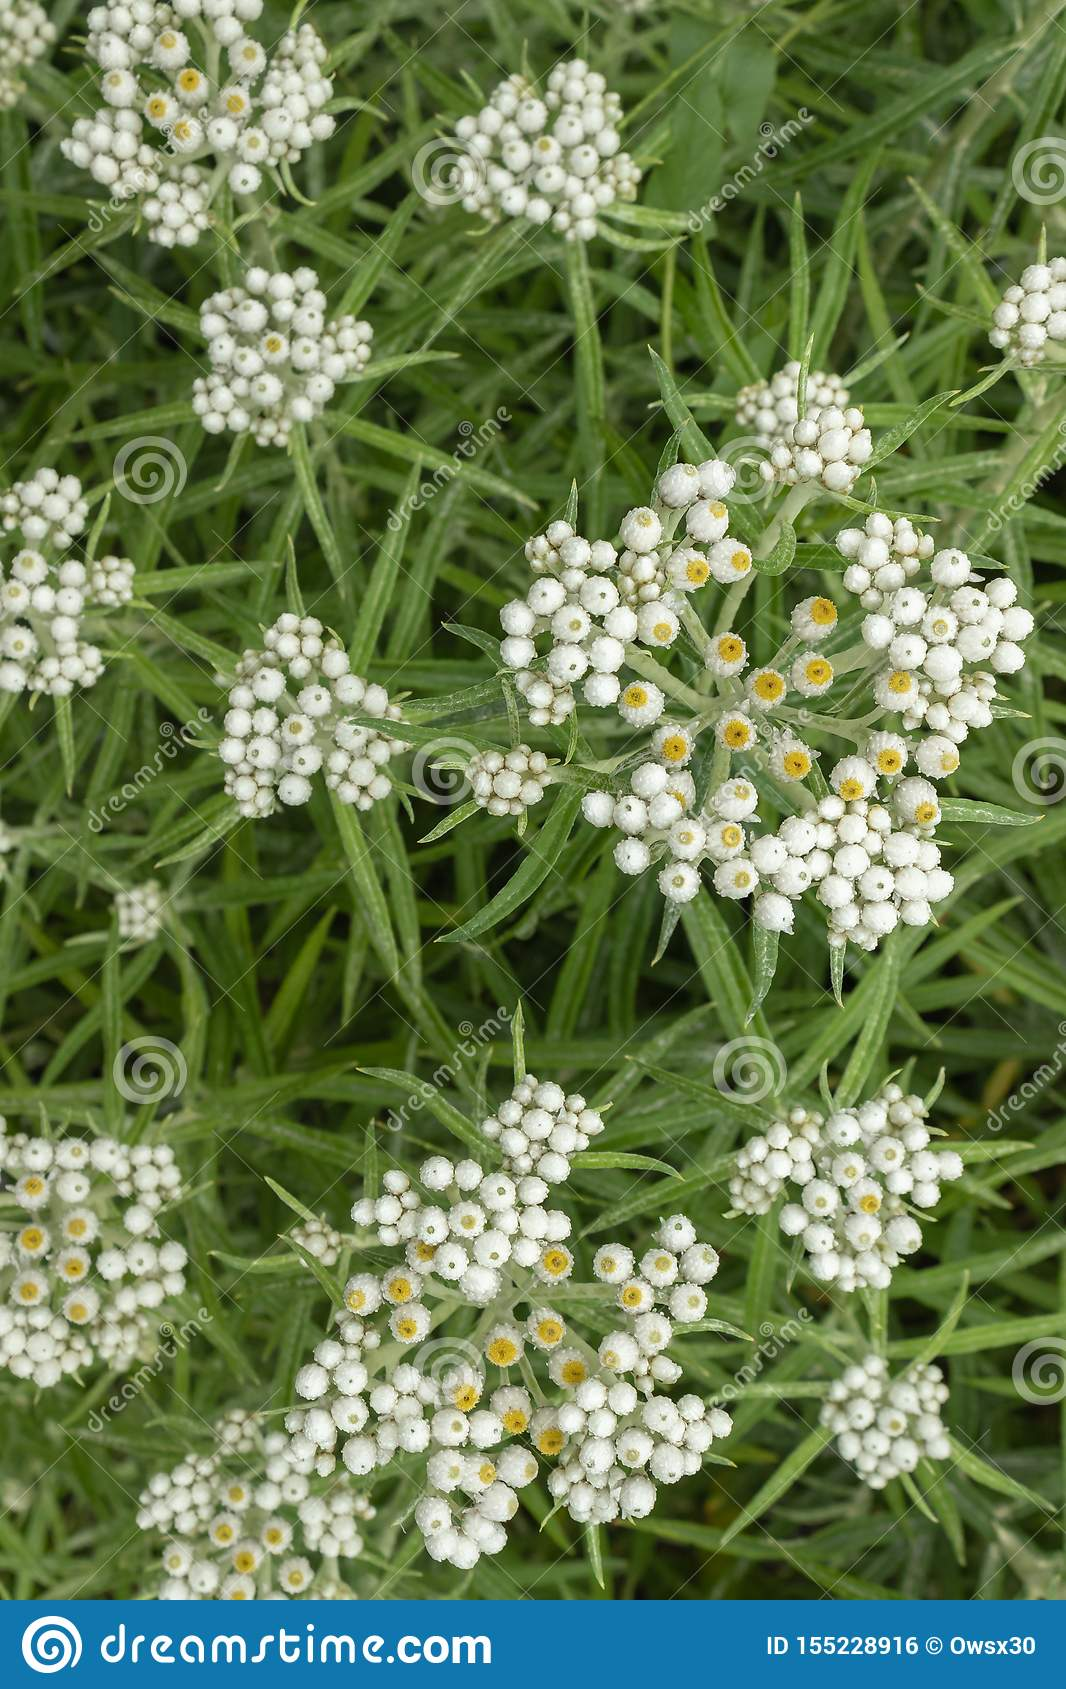 Anaphalis or triplinervis pearly everlasting, lots of white flowers background. close up